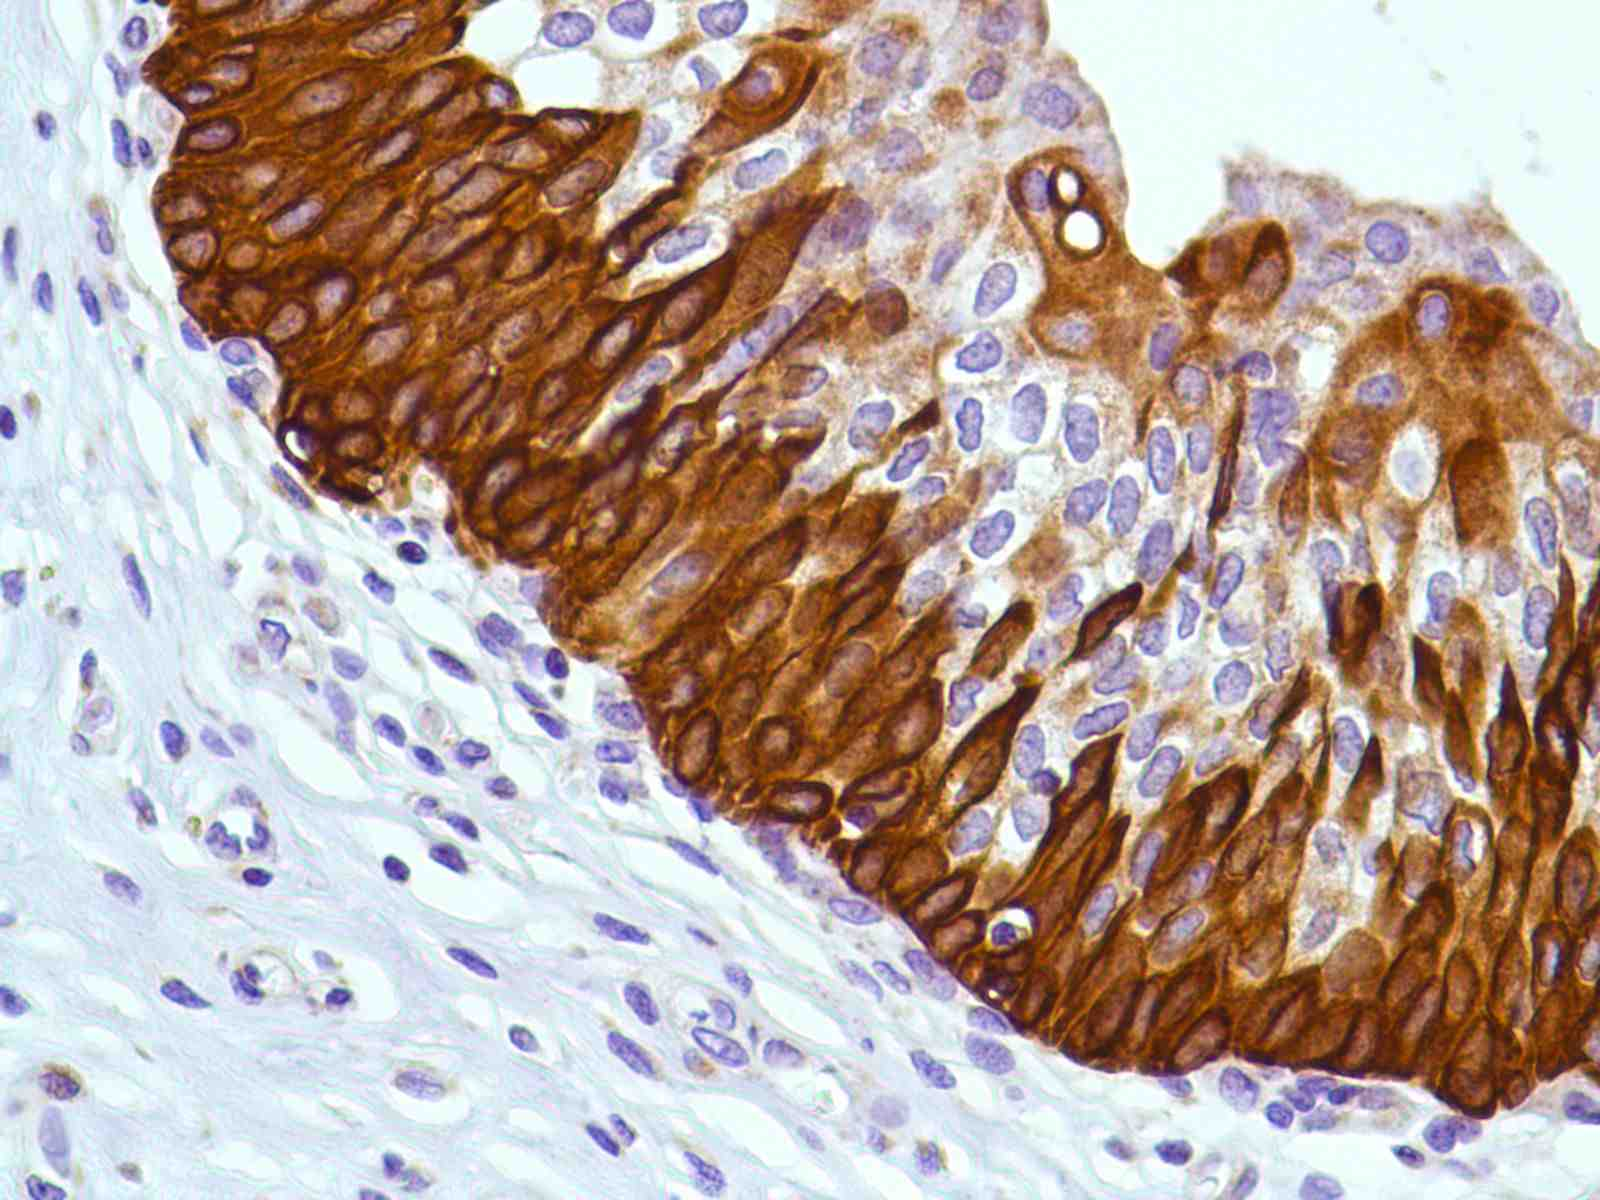 Human Bladder stained with anti-Keratin 6 antibody